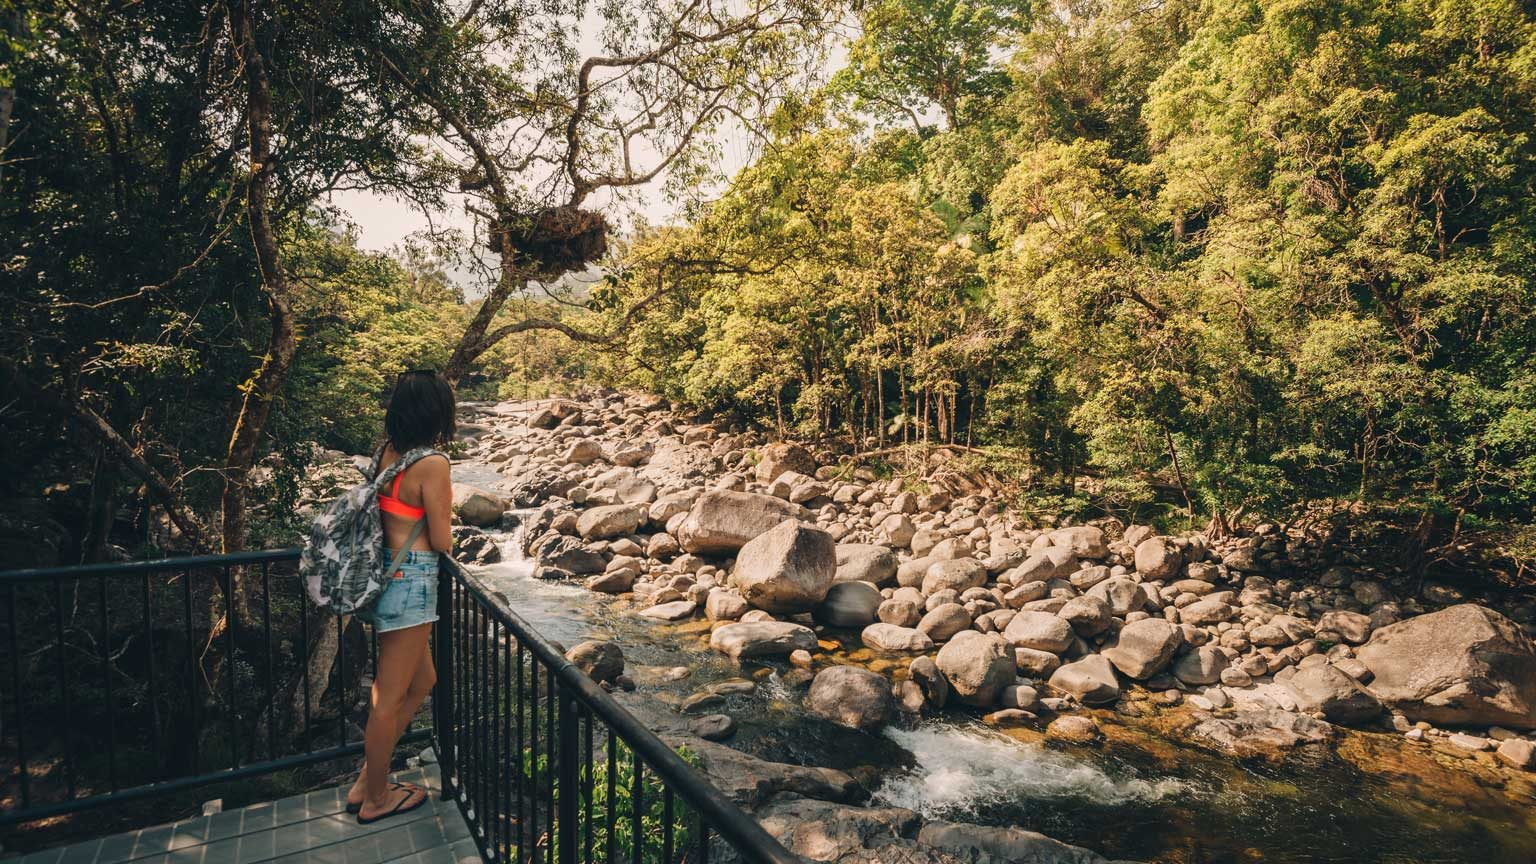 Tourist at Mossman gorge national park in far north Queensland